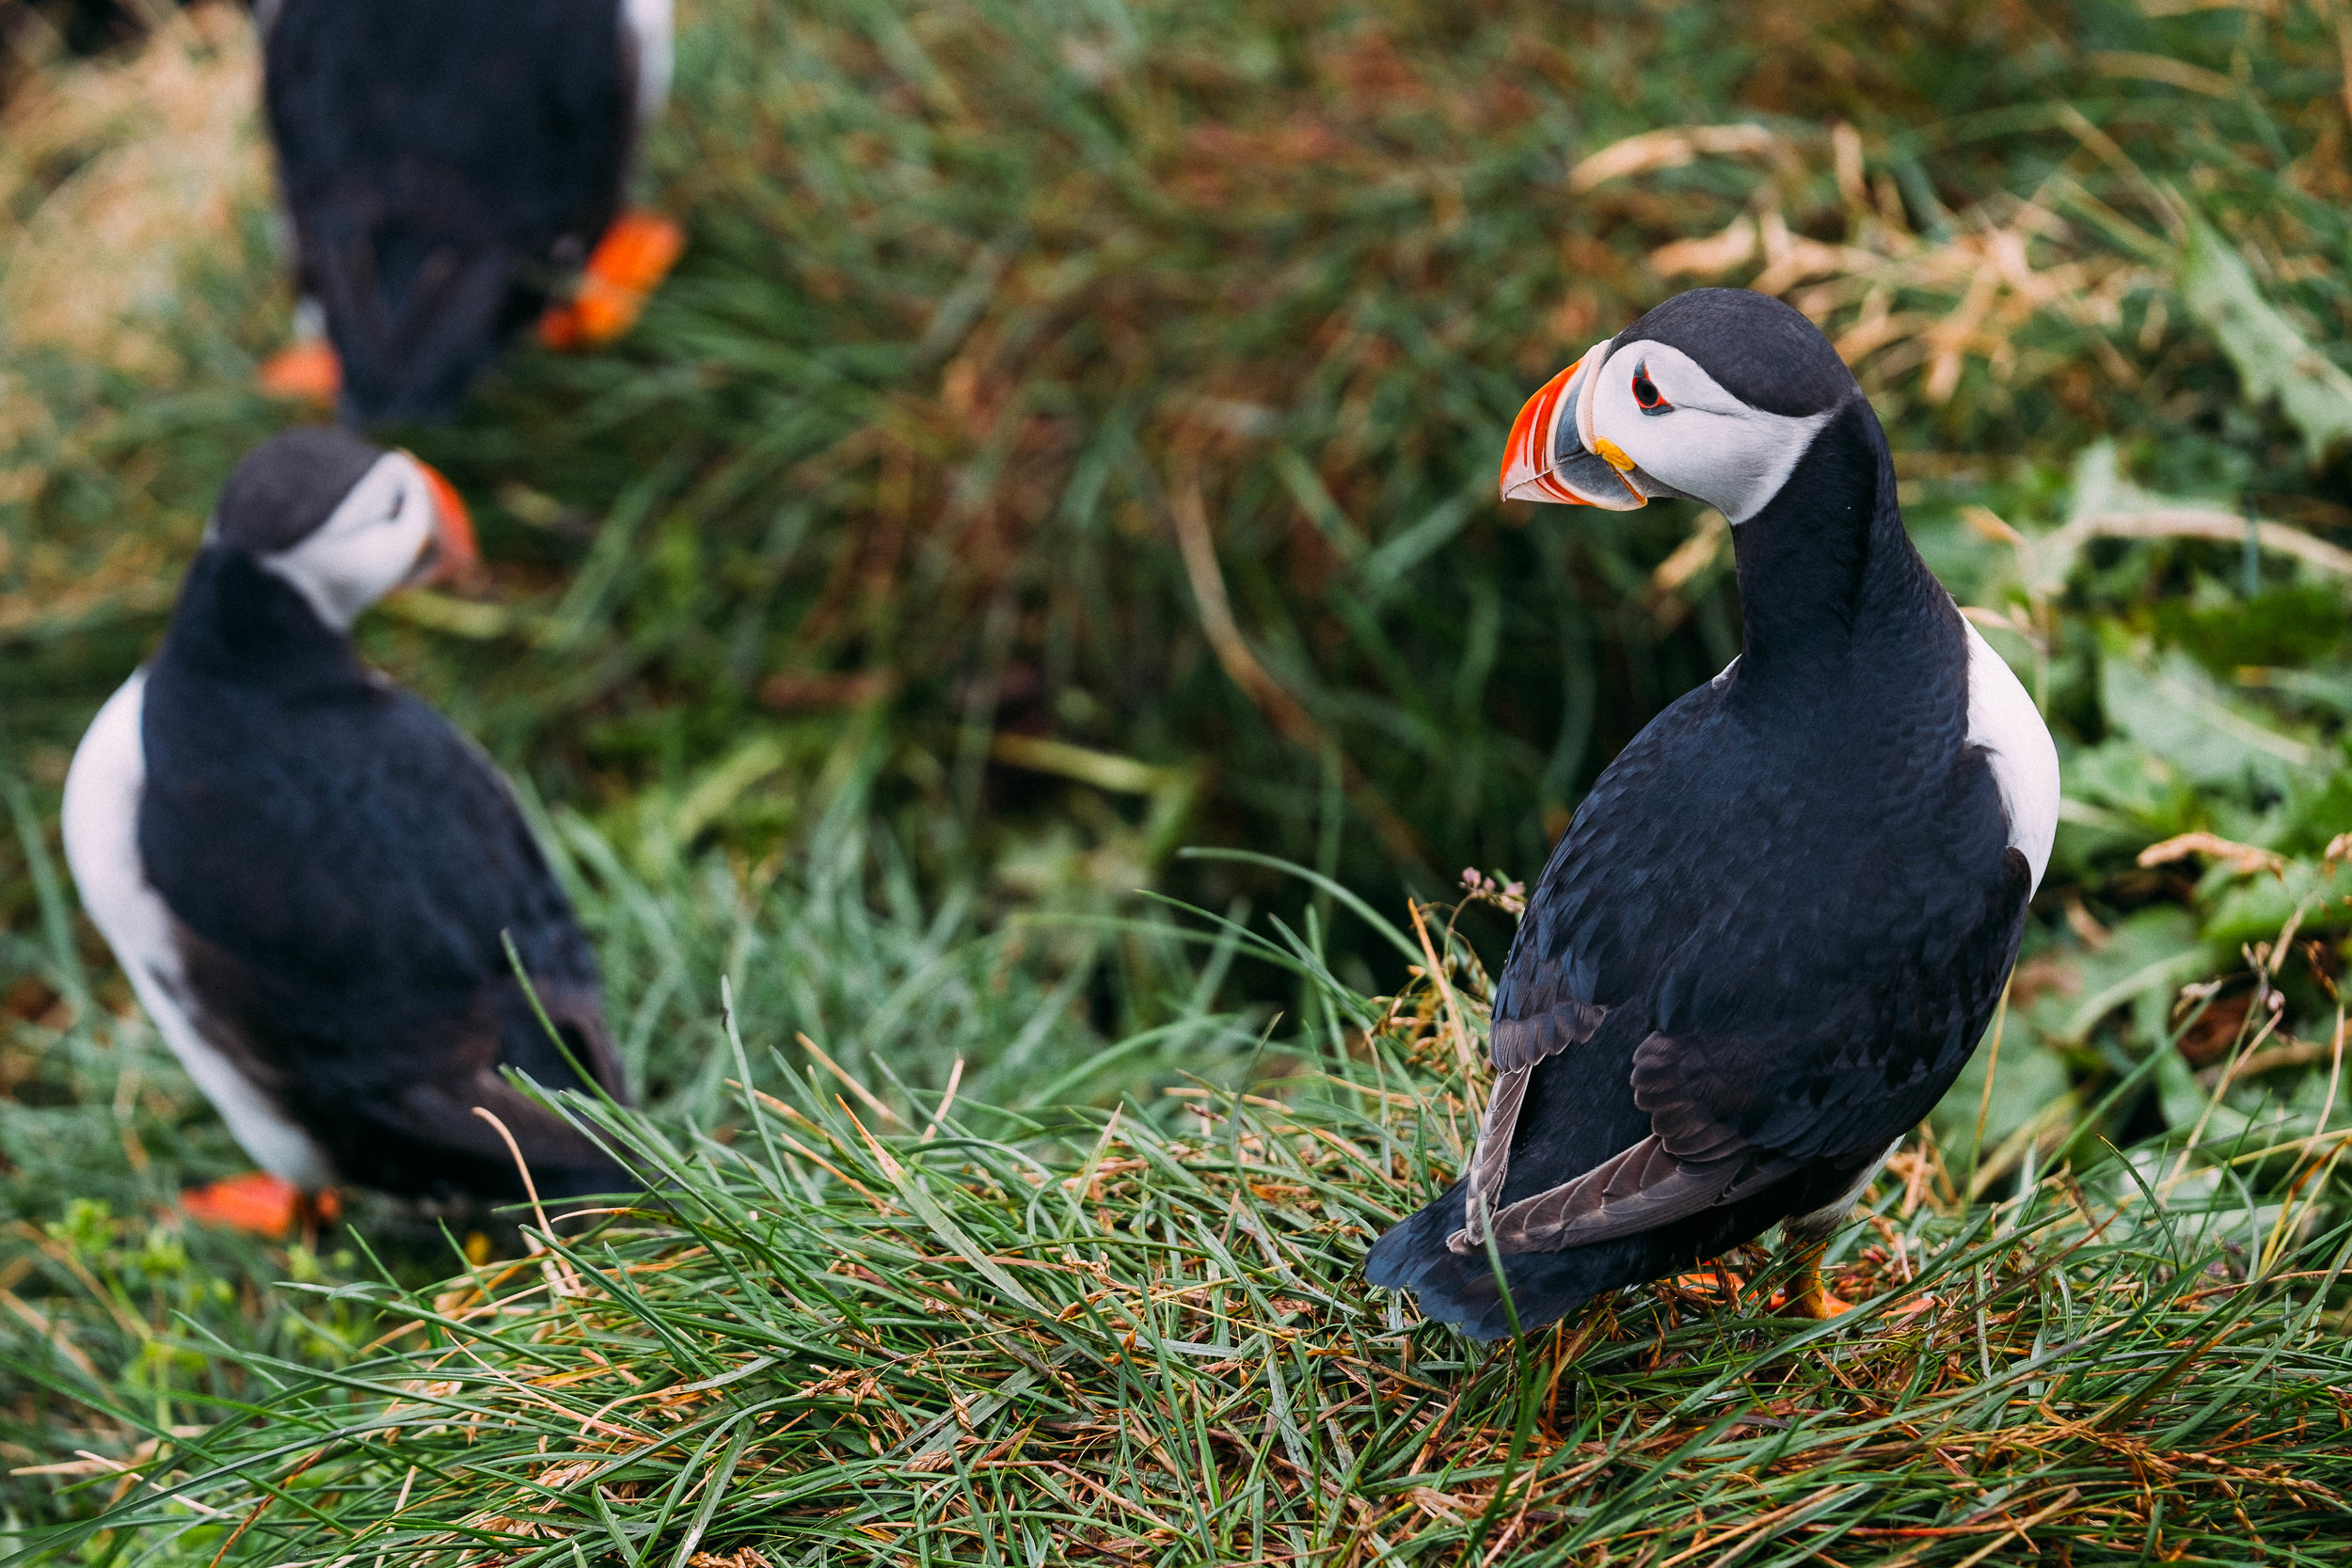 The long reach was ideal for photographing puffins in Iceland